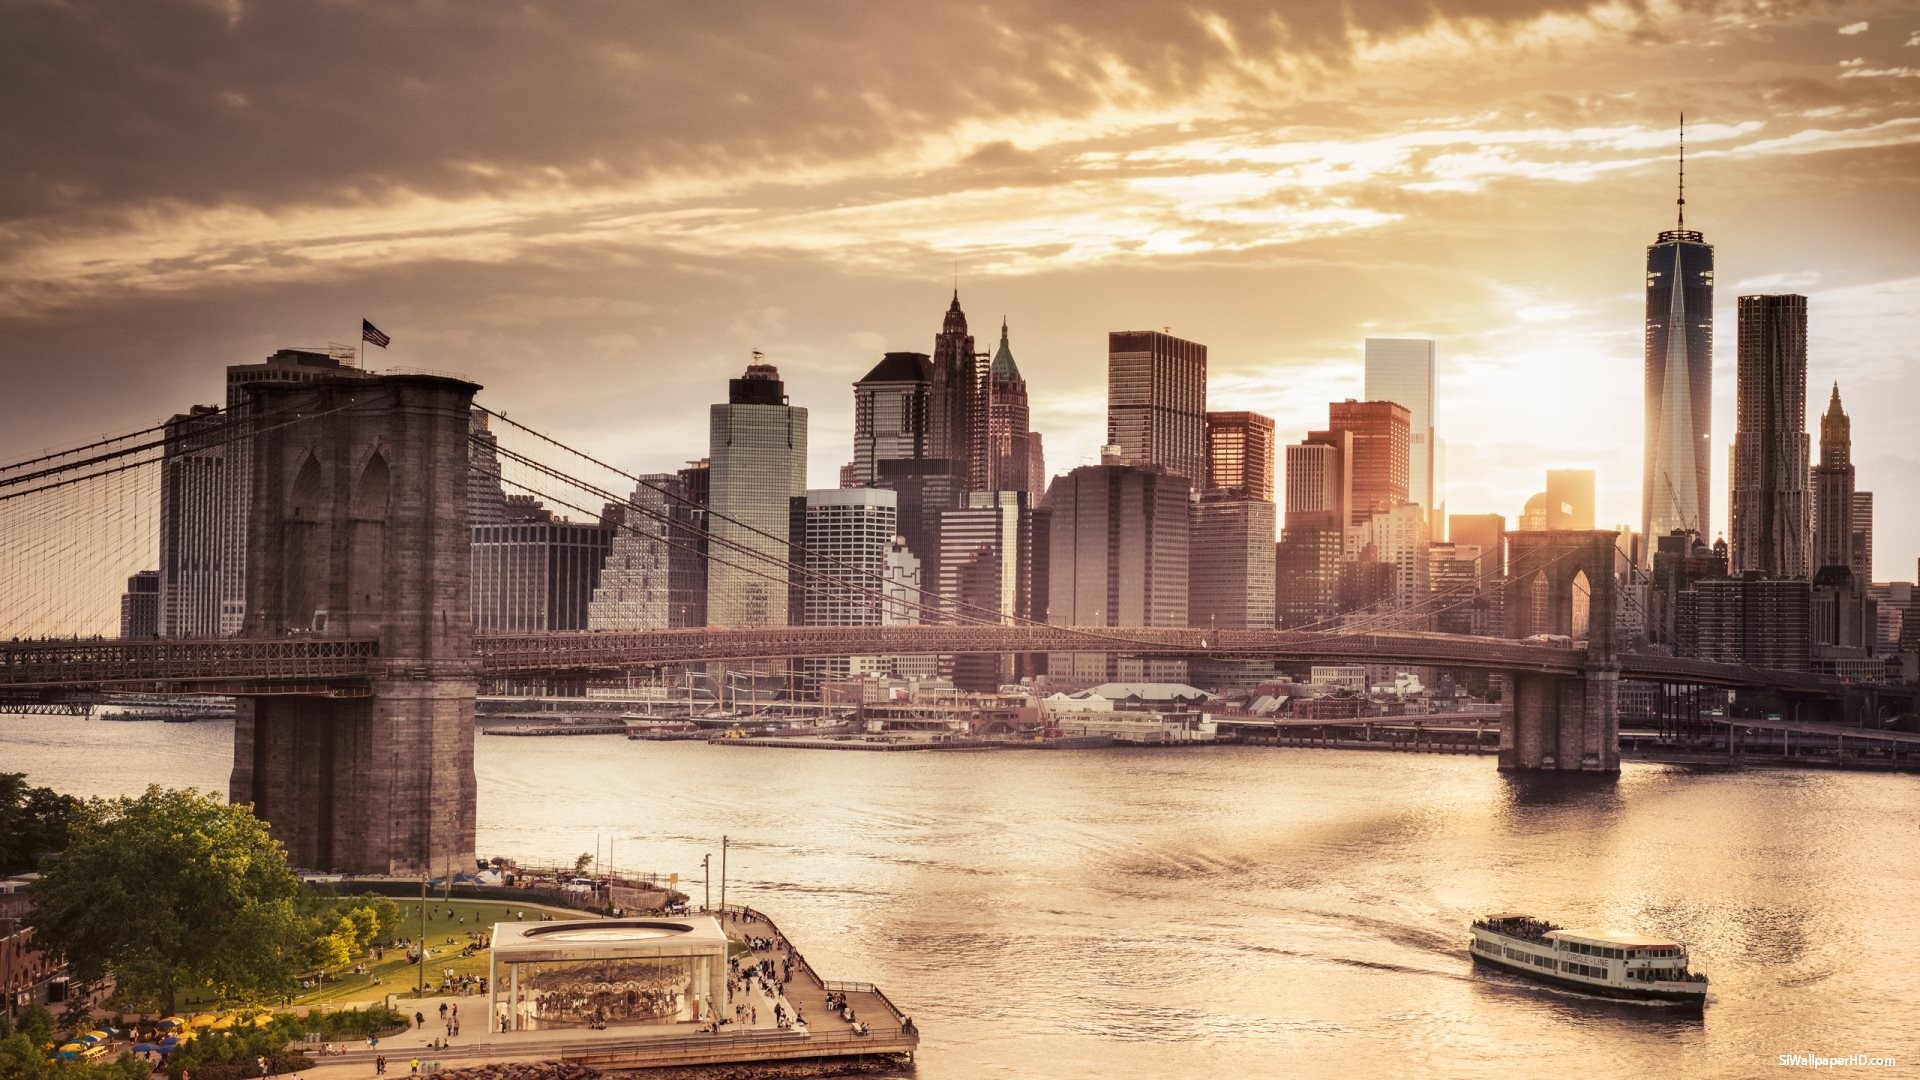 1920x1080 New York City Skyline Wallpaper HD 16 Image High Resolution Wallpaper .